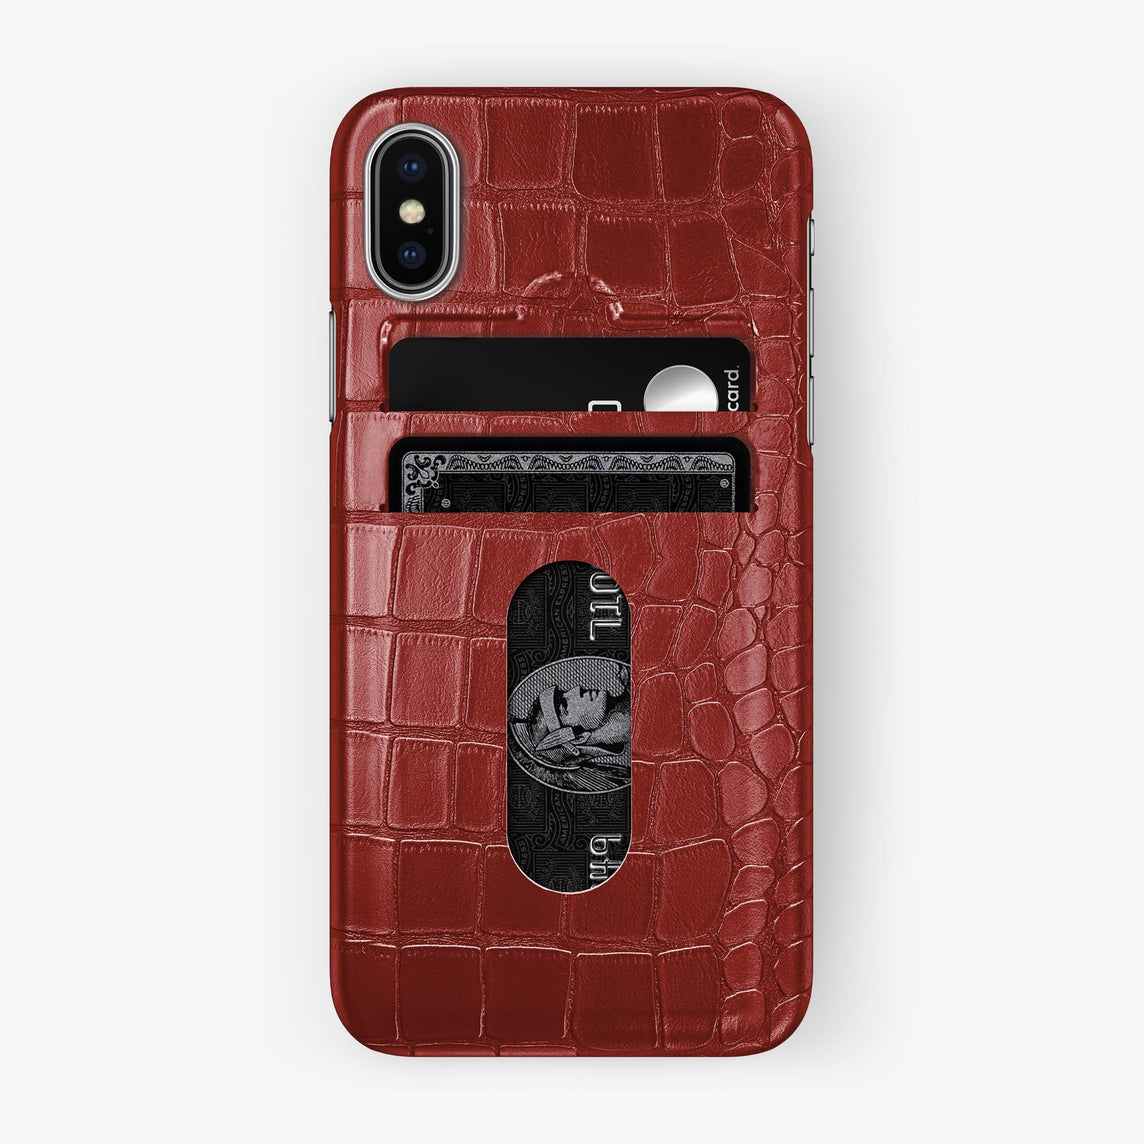 Alligator Card Holder Case iPhone X/Xs | Red - Stainless Steel with-personalization